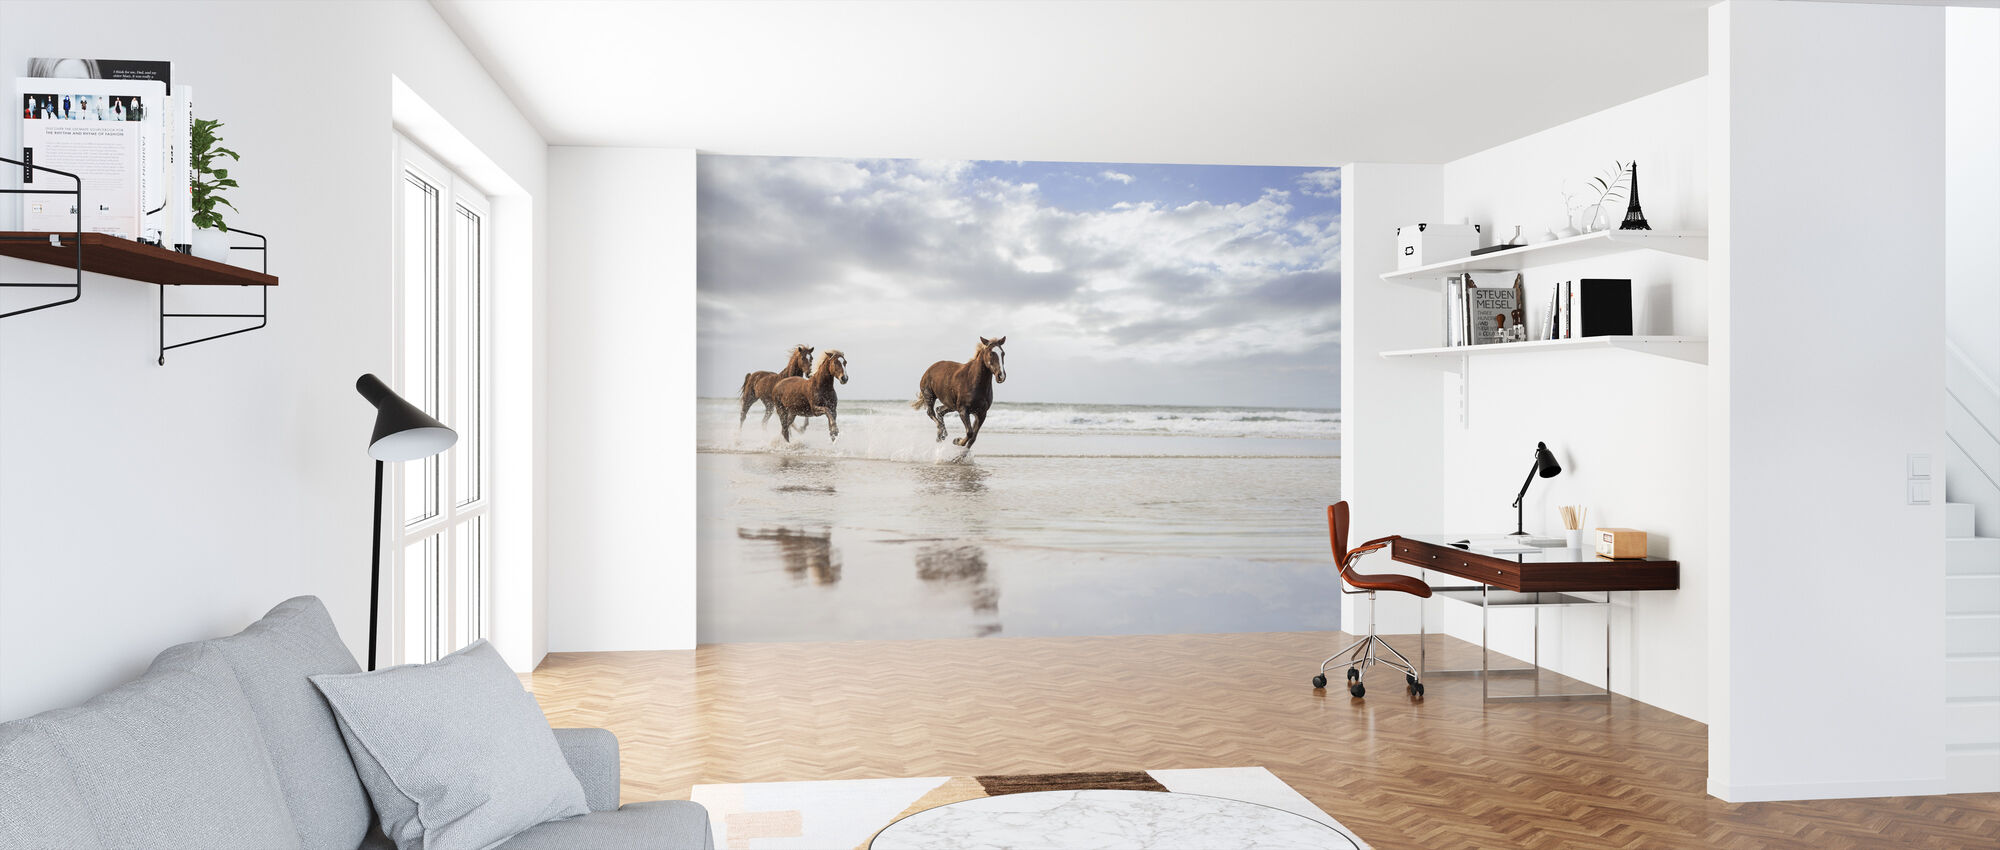 Horses on South African Beach - Wallpaper - Office